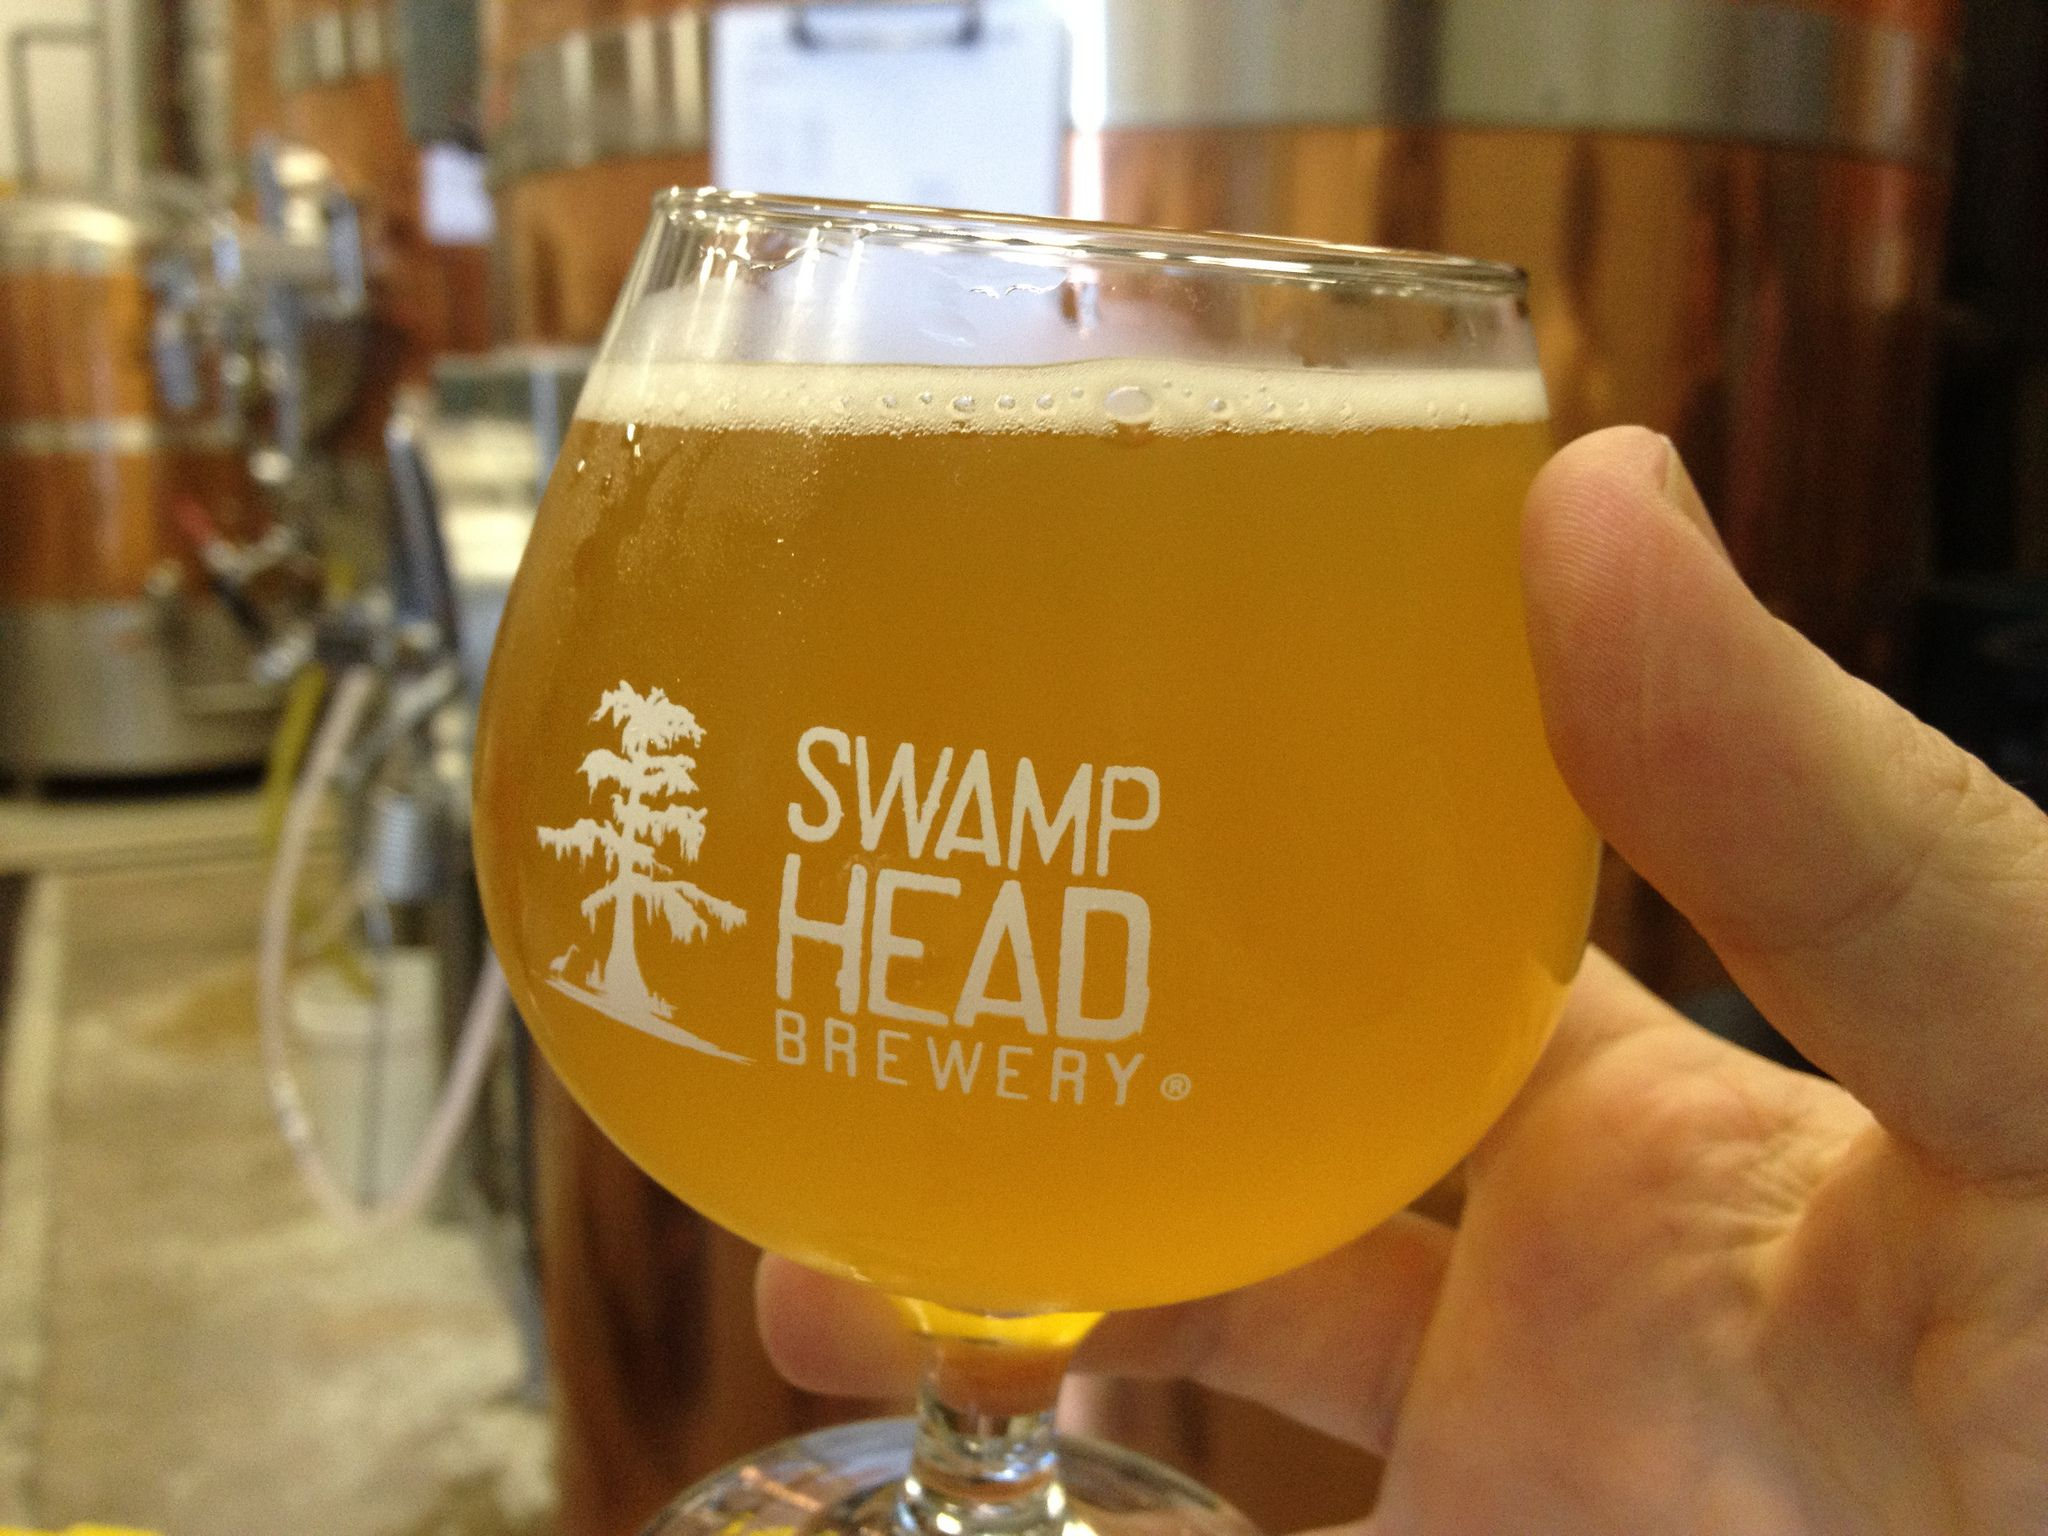 Swamp Head Brewery beer glass